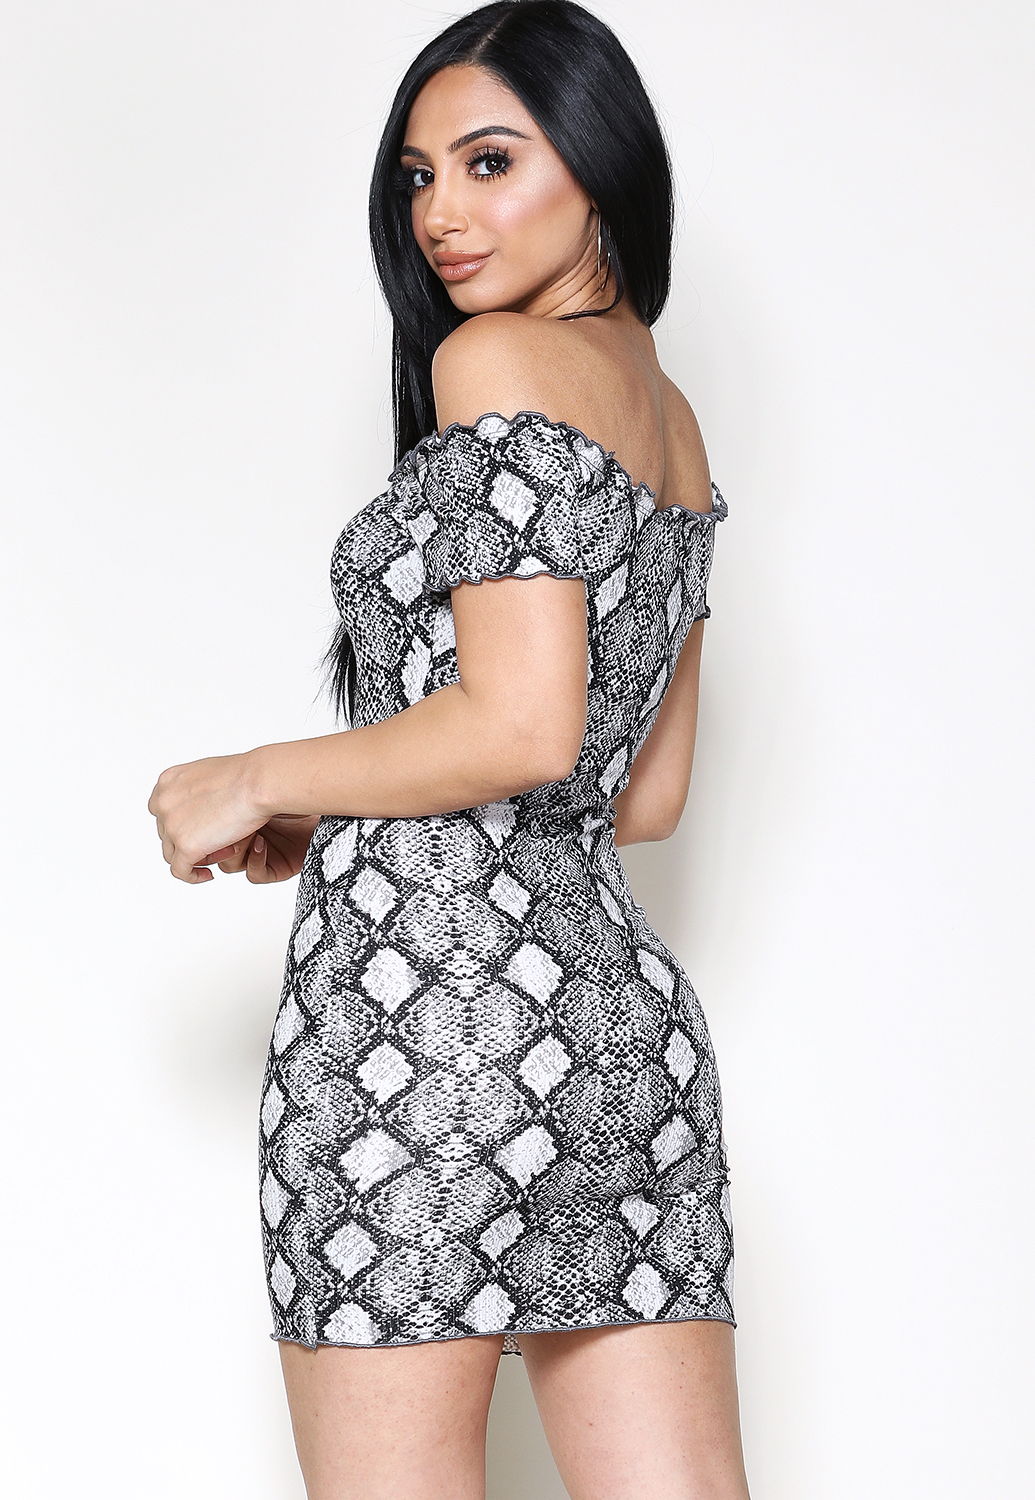 Kimberly Snakeskin Dress